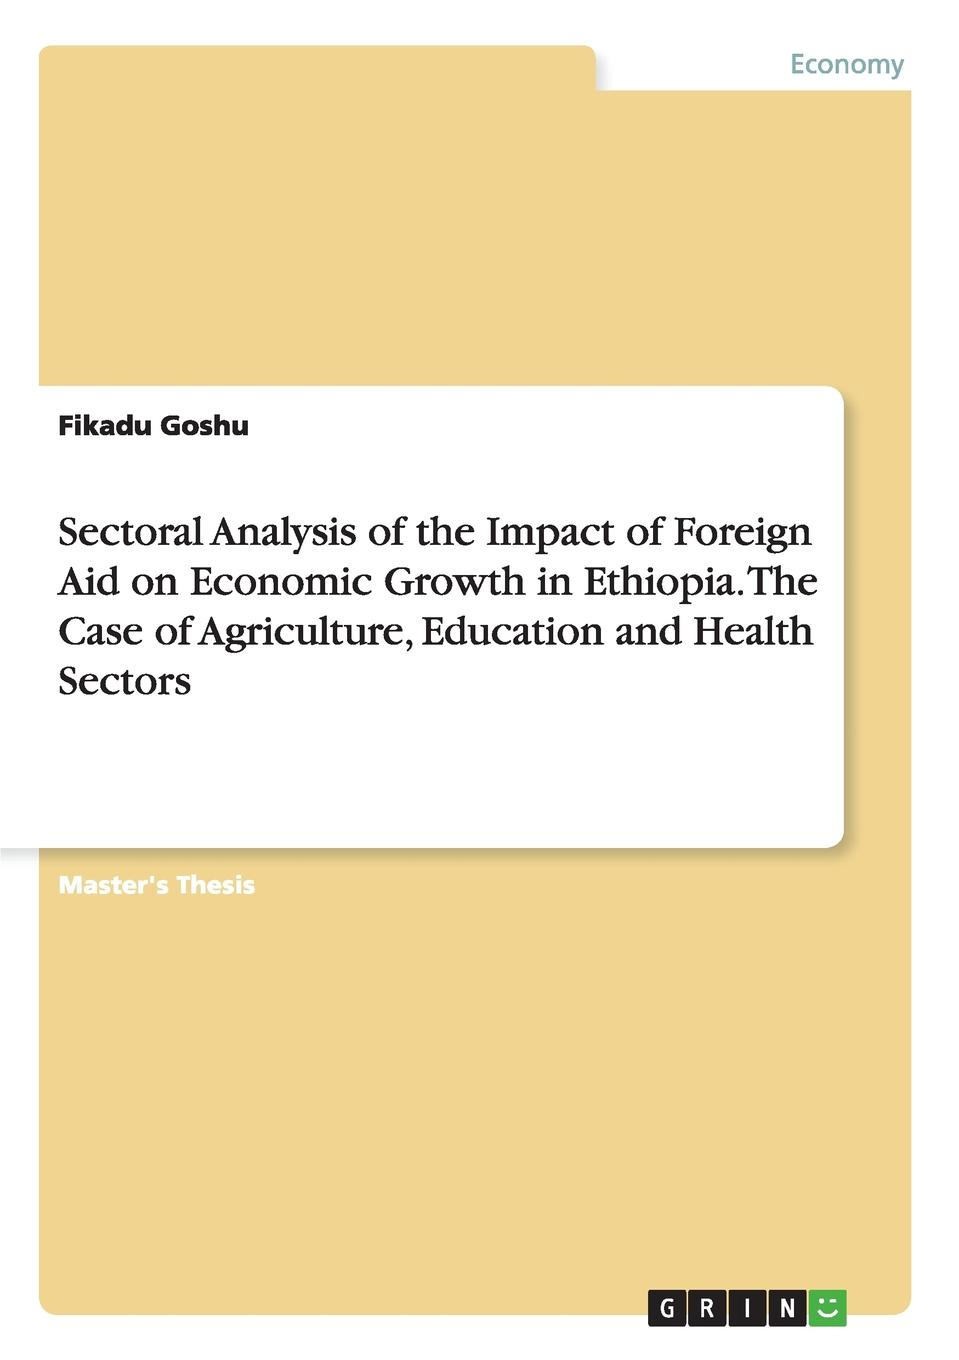 Fikadu Goshu Sectoral Analysis of the Impact of Foreign Aid on Economic Growth in Ethiopia. The Case of Agriculture, Education and Health Sectors the rationale behind foreign aid